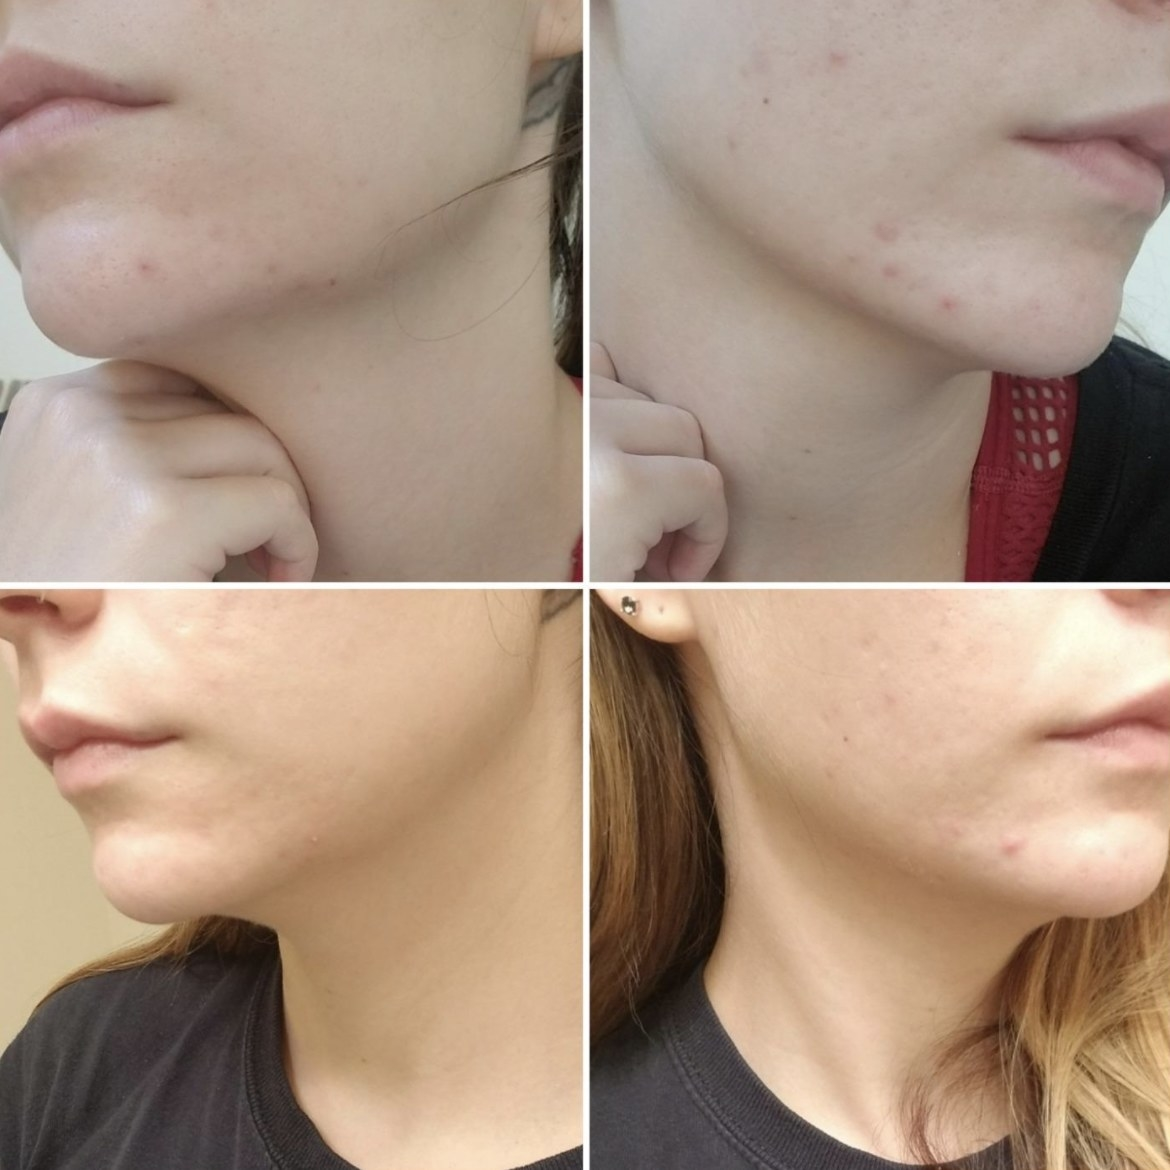 before and after one week of using the acne treatment